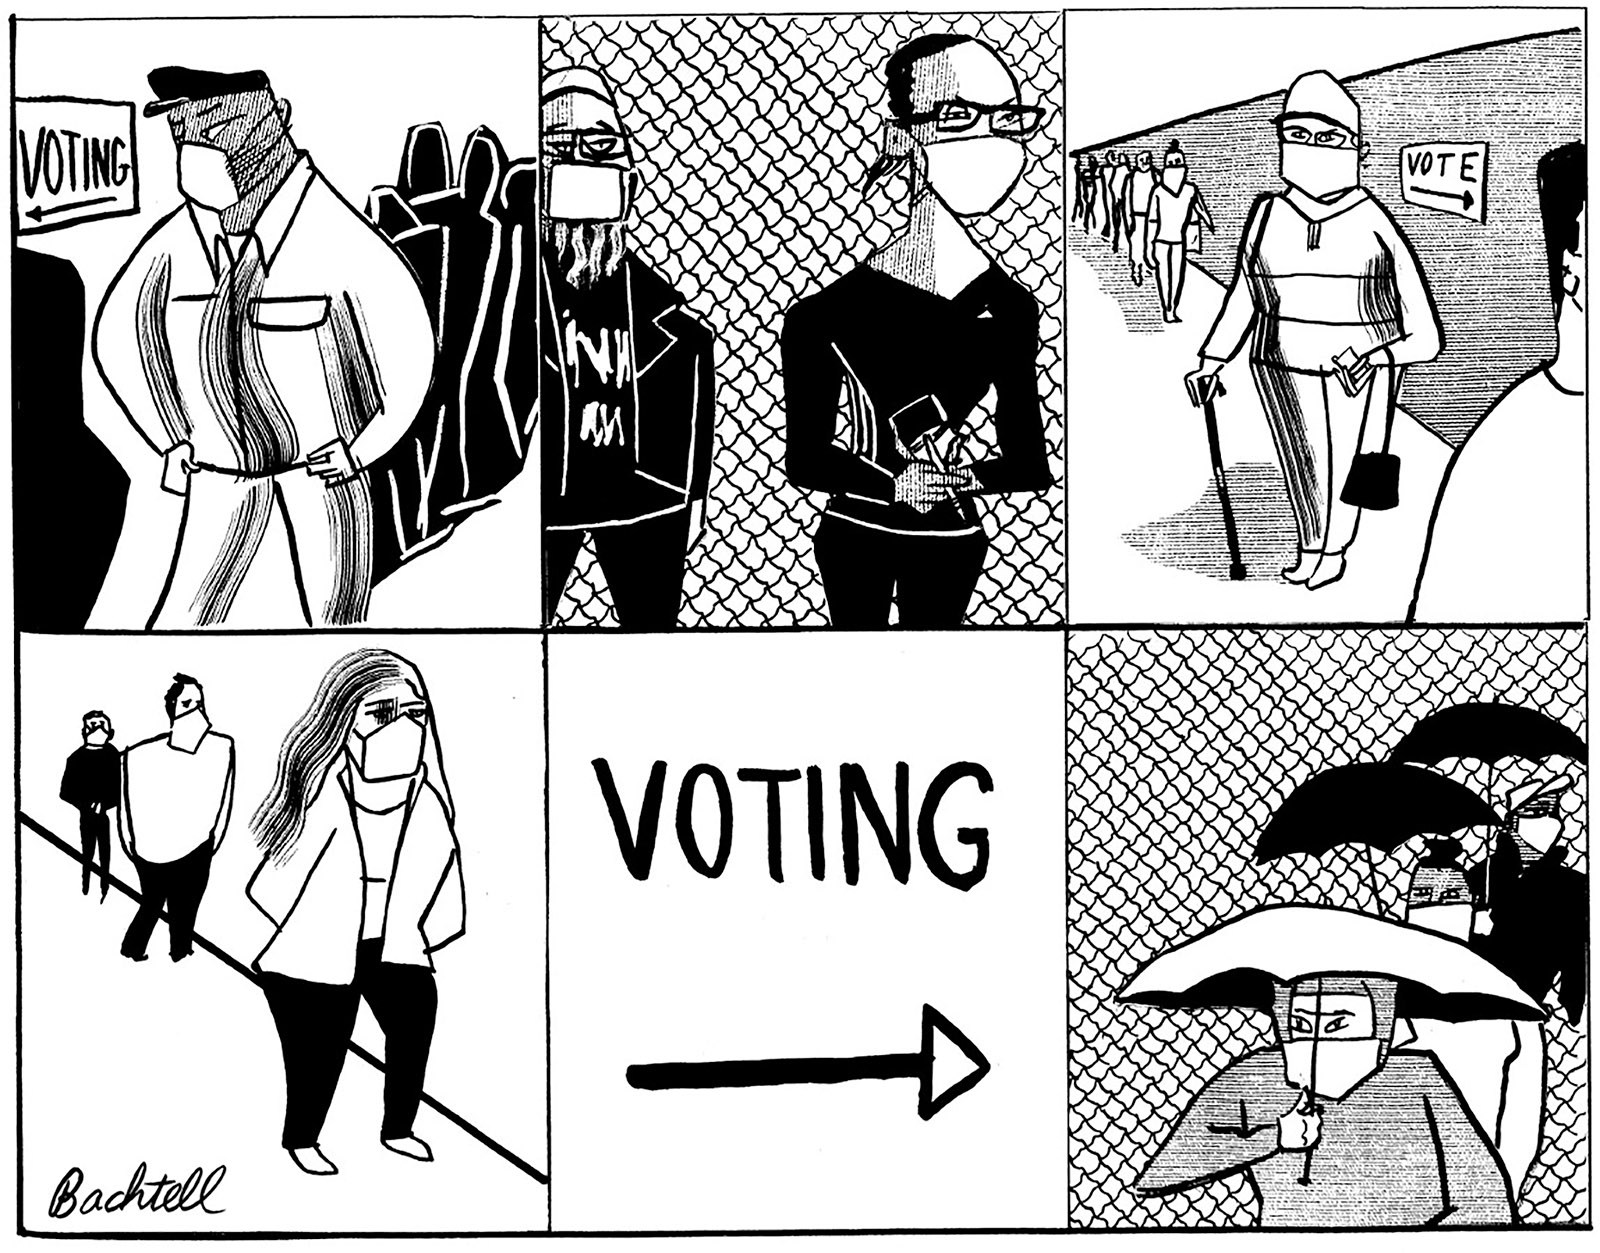 Drawing of masked people waiting to vote